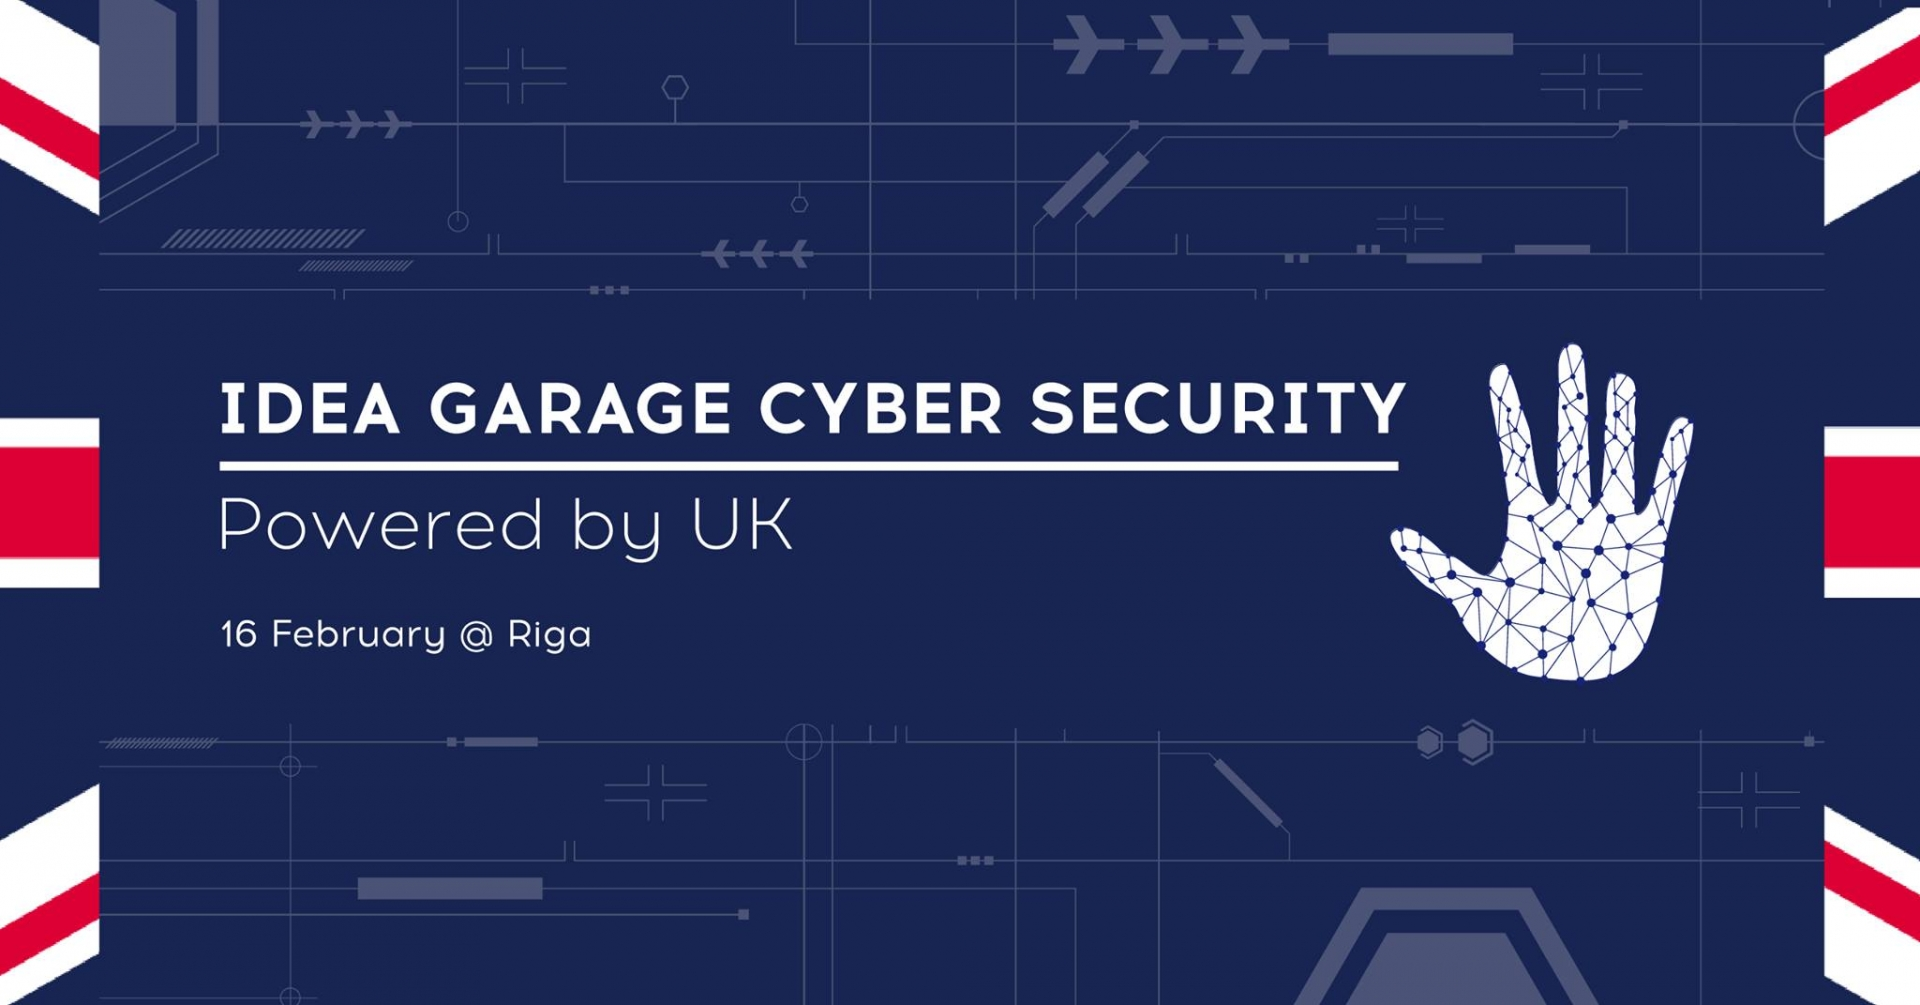 «Idea Garage Cyber Security Riga Powered by UK»